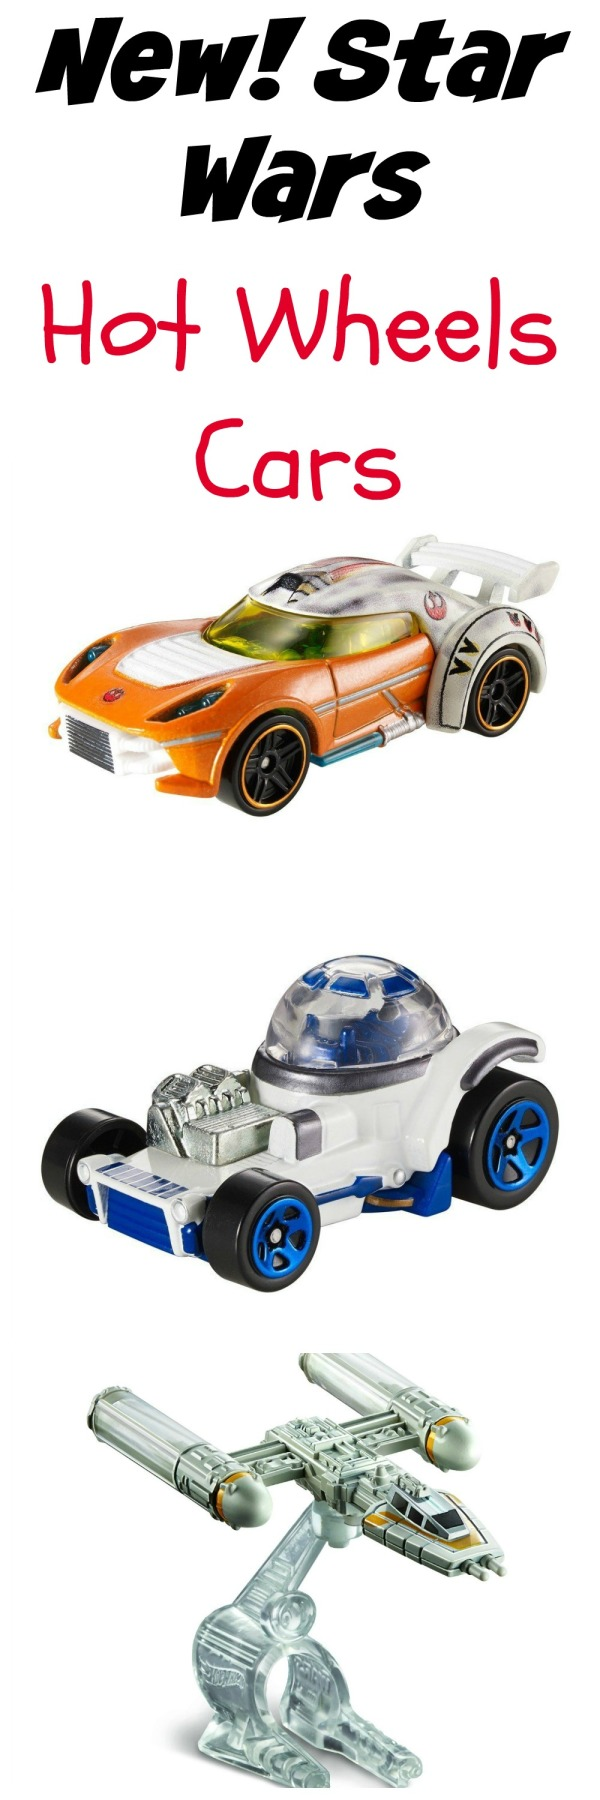 star wars hot wheels cars collage